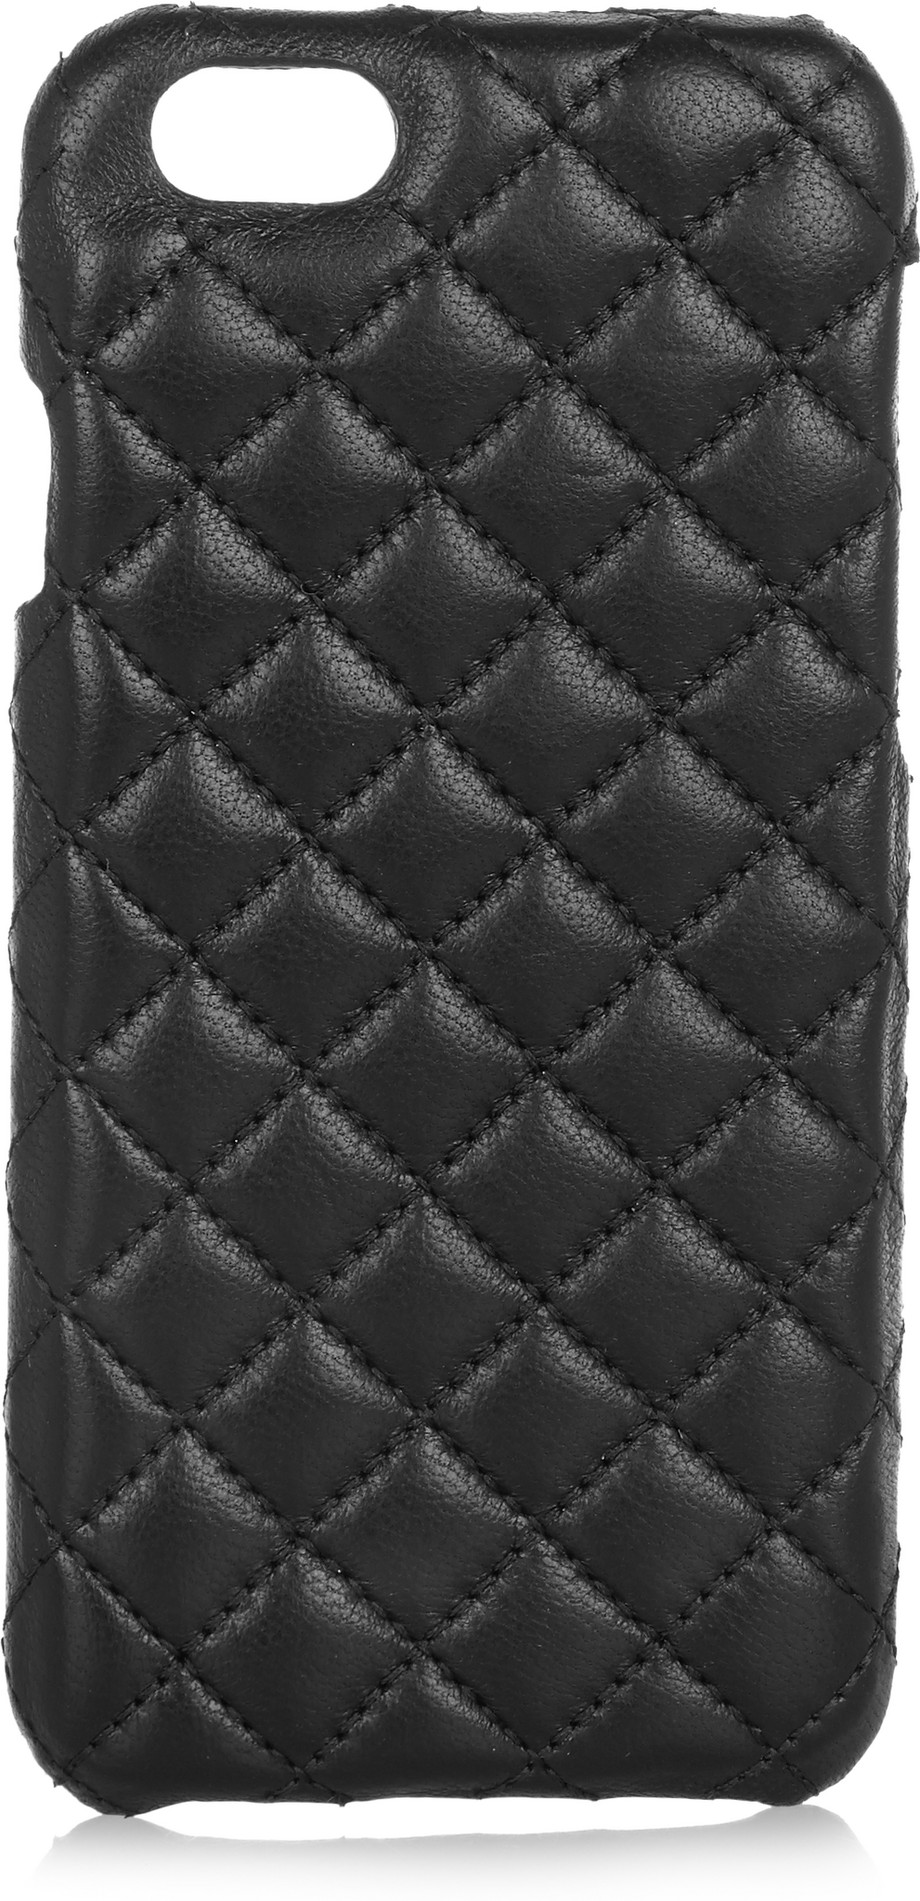 Quilted Leather Iphone 6 Case, The Case Factory